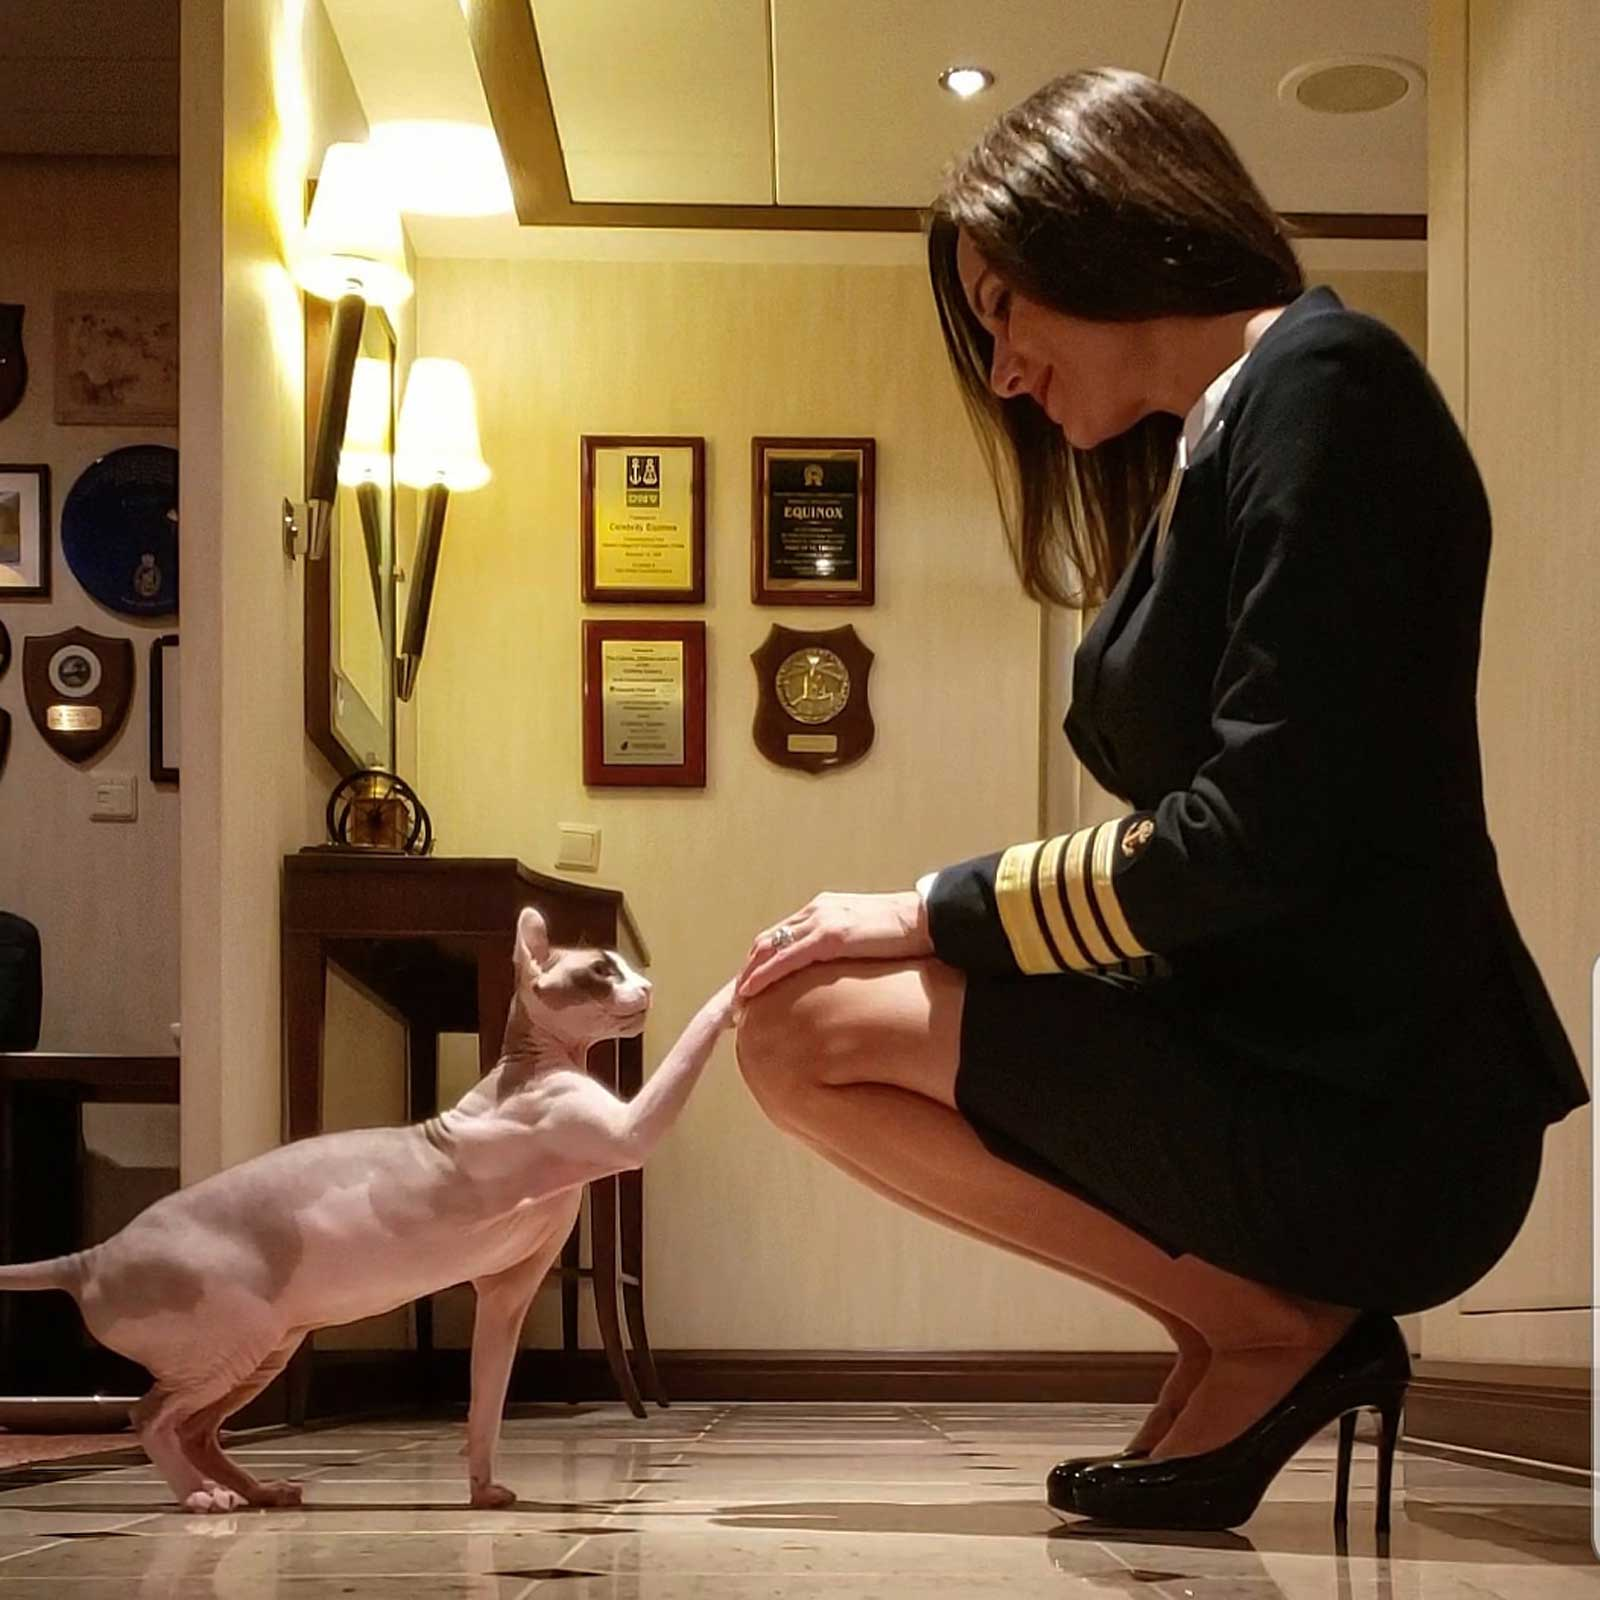 America's First Female Cruise Captain Travels the World With Her Adorable Sphynx Cat